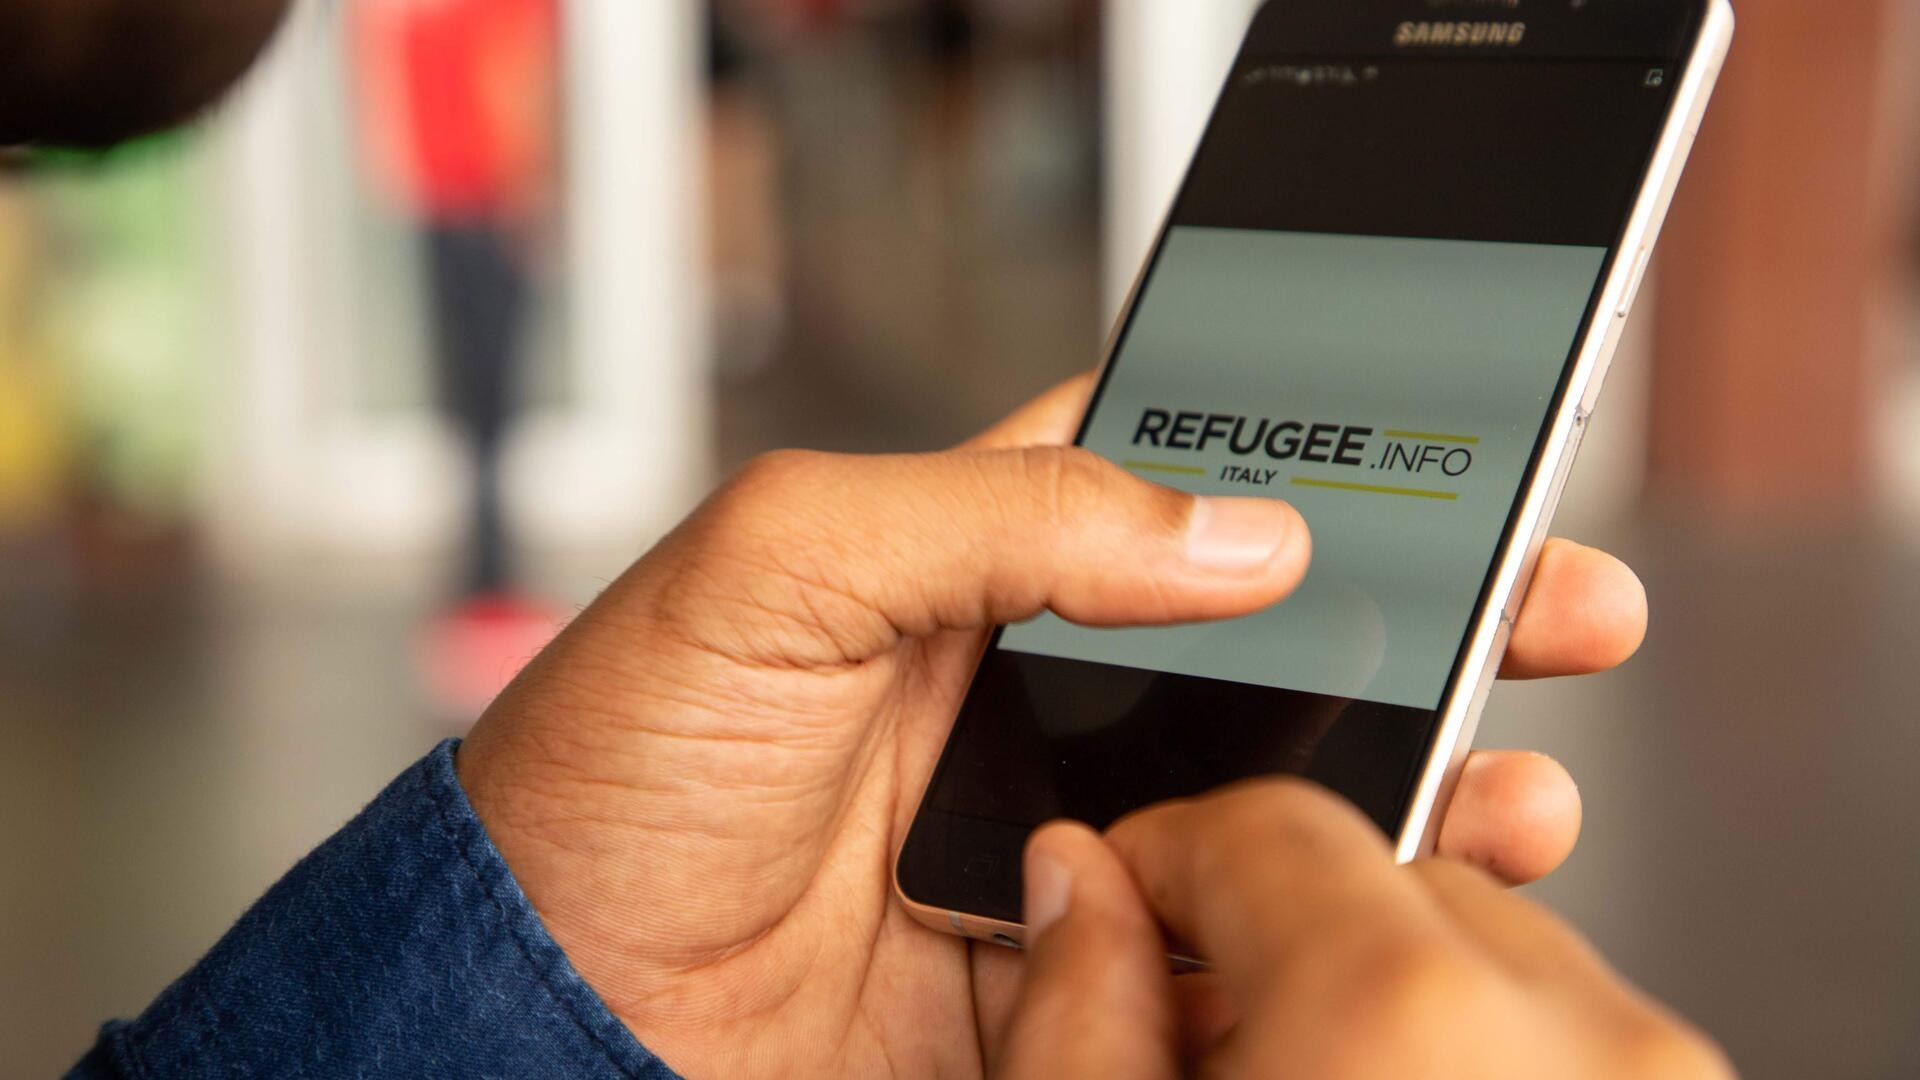 A cellphone showing Refugee.Info site on the screen